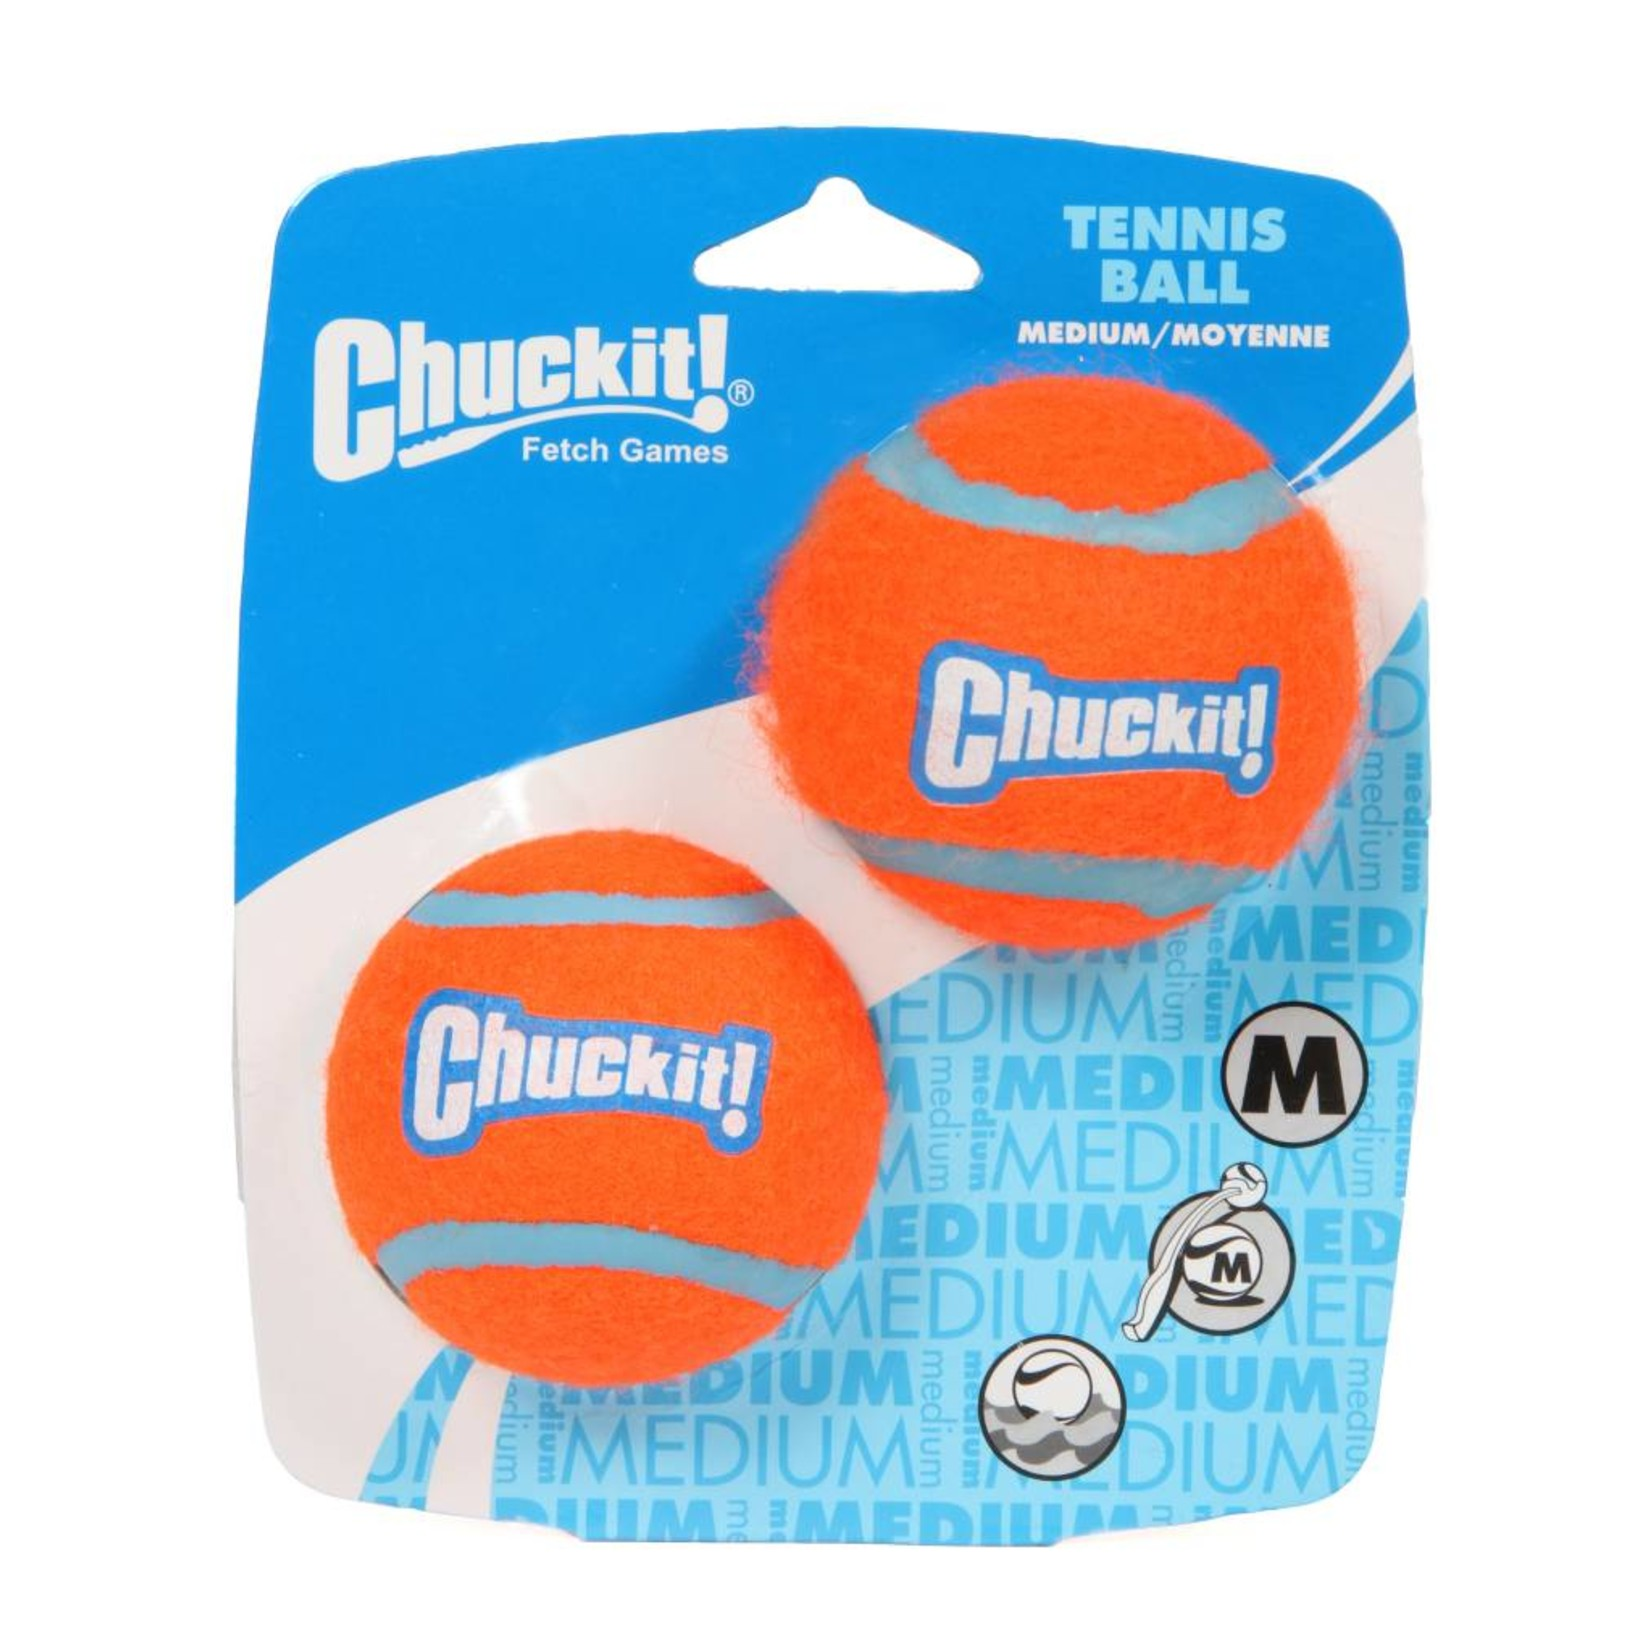 Chuckit Tennis Ball Dog Toy, Medium 6.5cm, 2 pack